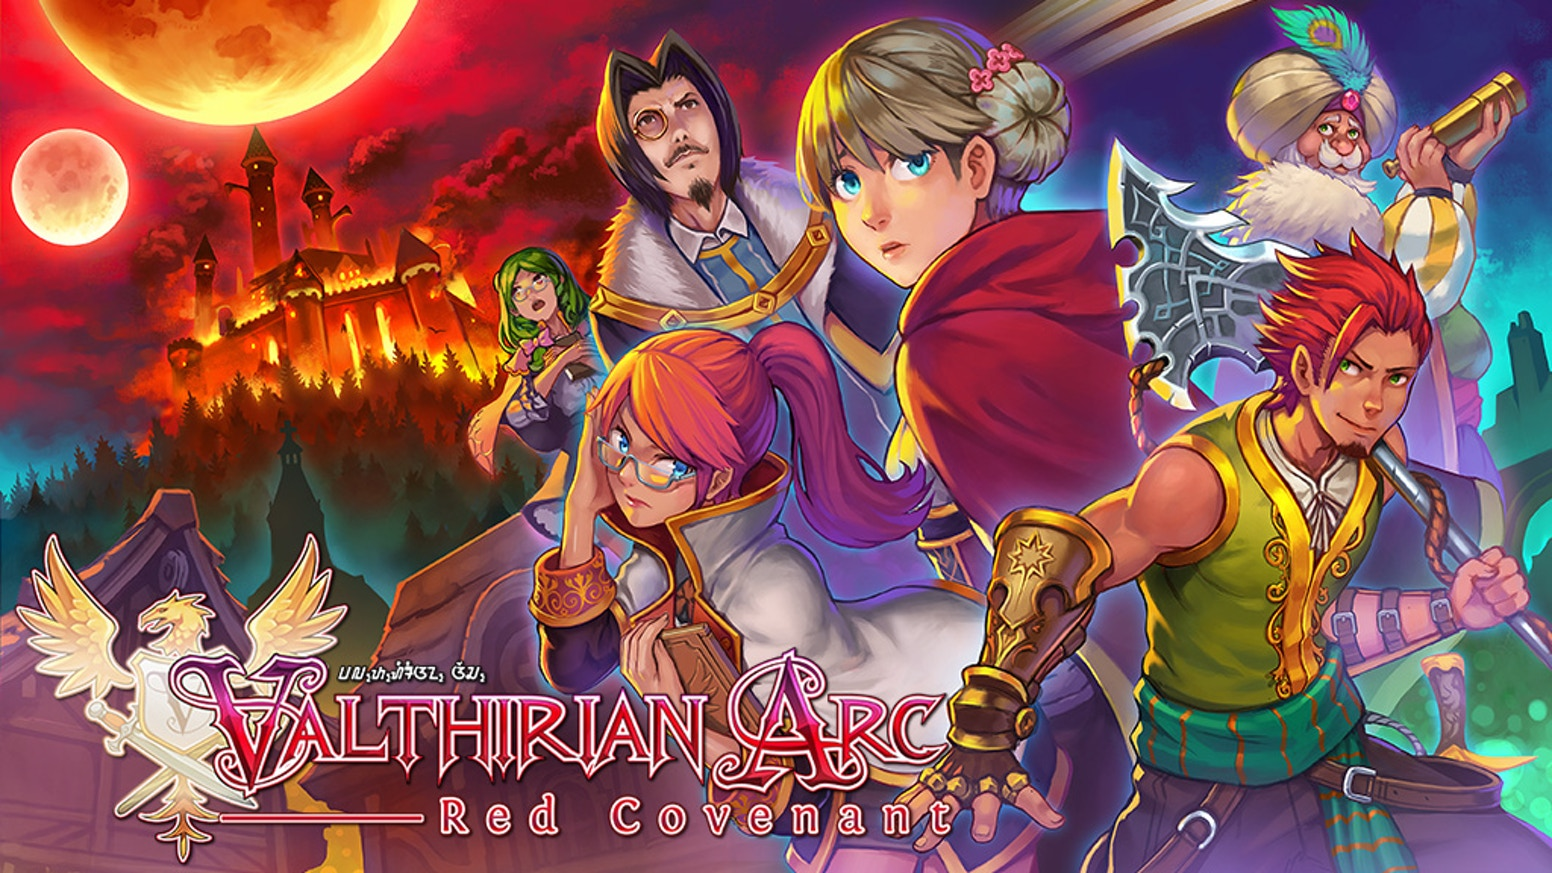 Manage your own academy of warriors, complete missions, and become the hero of Valthiria! (PC)